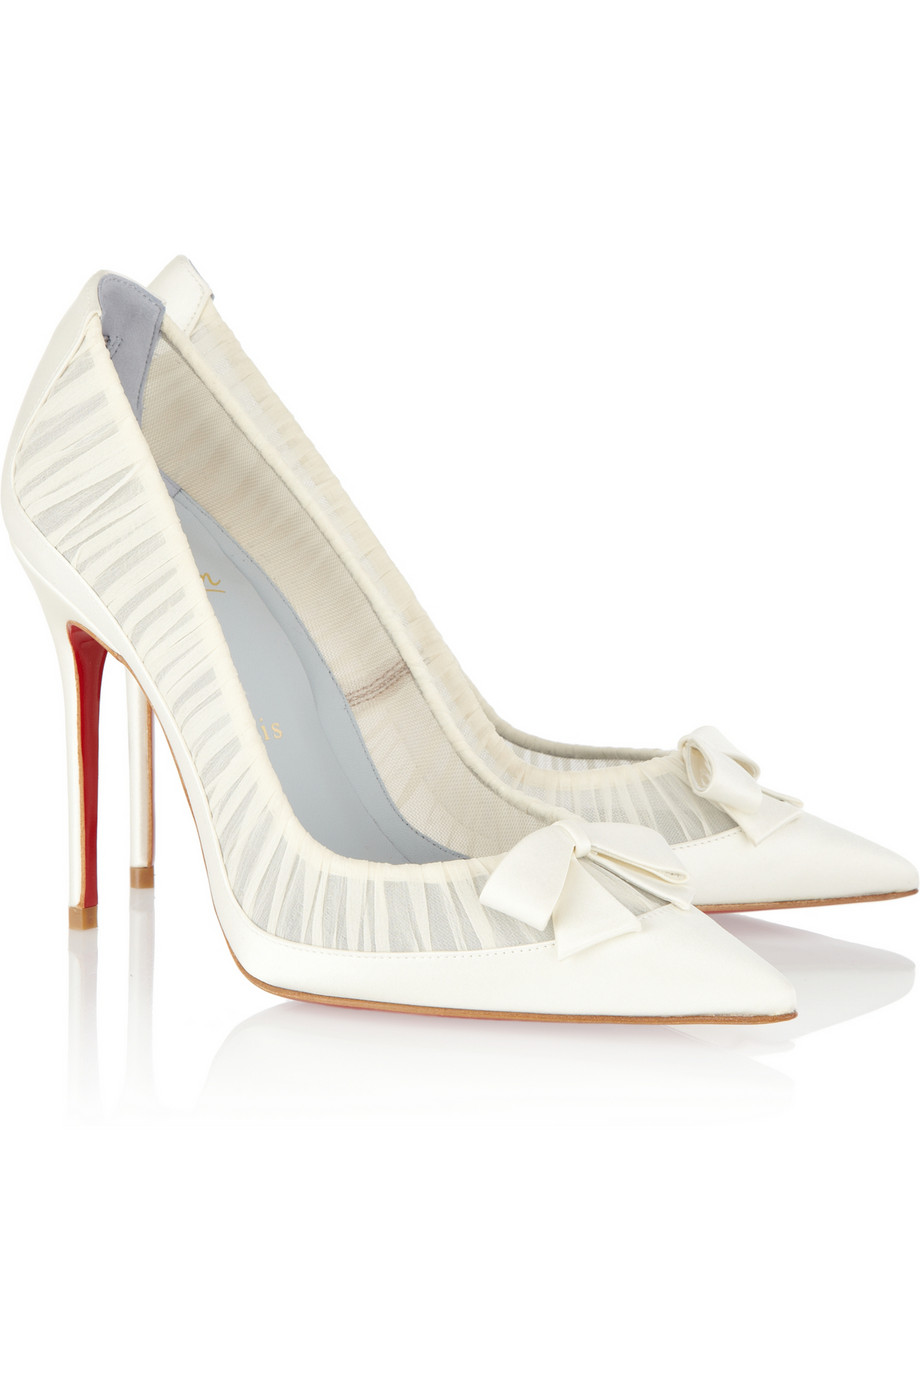 Christian Louboutin Wedding Shoes The ultimate bridal shoe